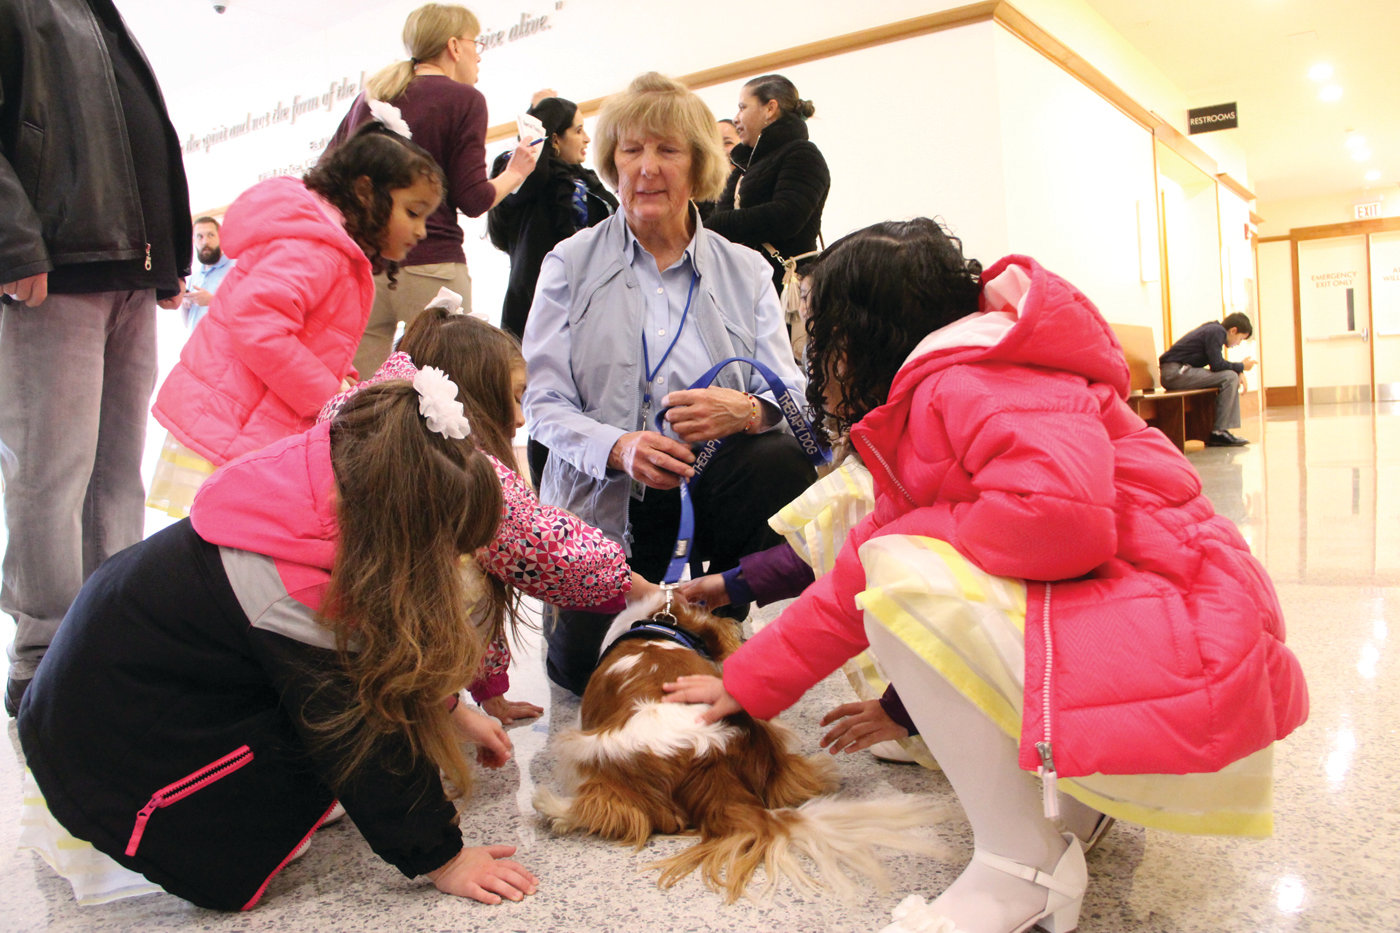 CENTER OF ATTENTION: Meg Schwab, who regularly brings her dog Reidy as a therapy dog to relive stress at Family Court, found many young admirers at Saturday's adoption day.